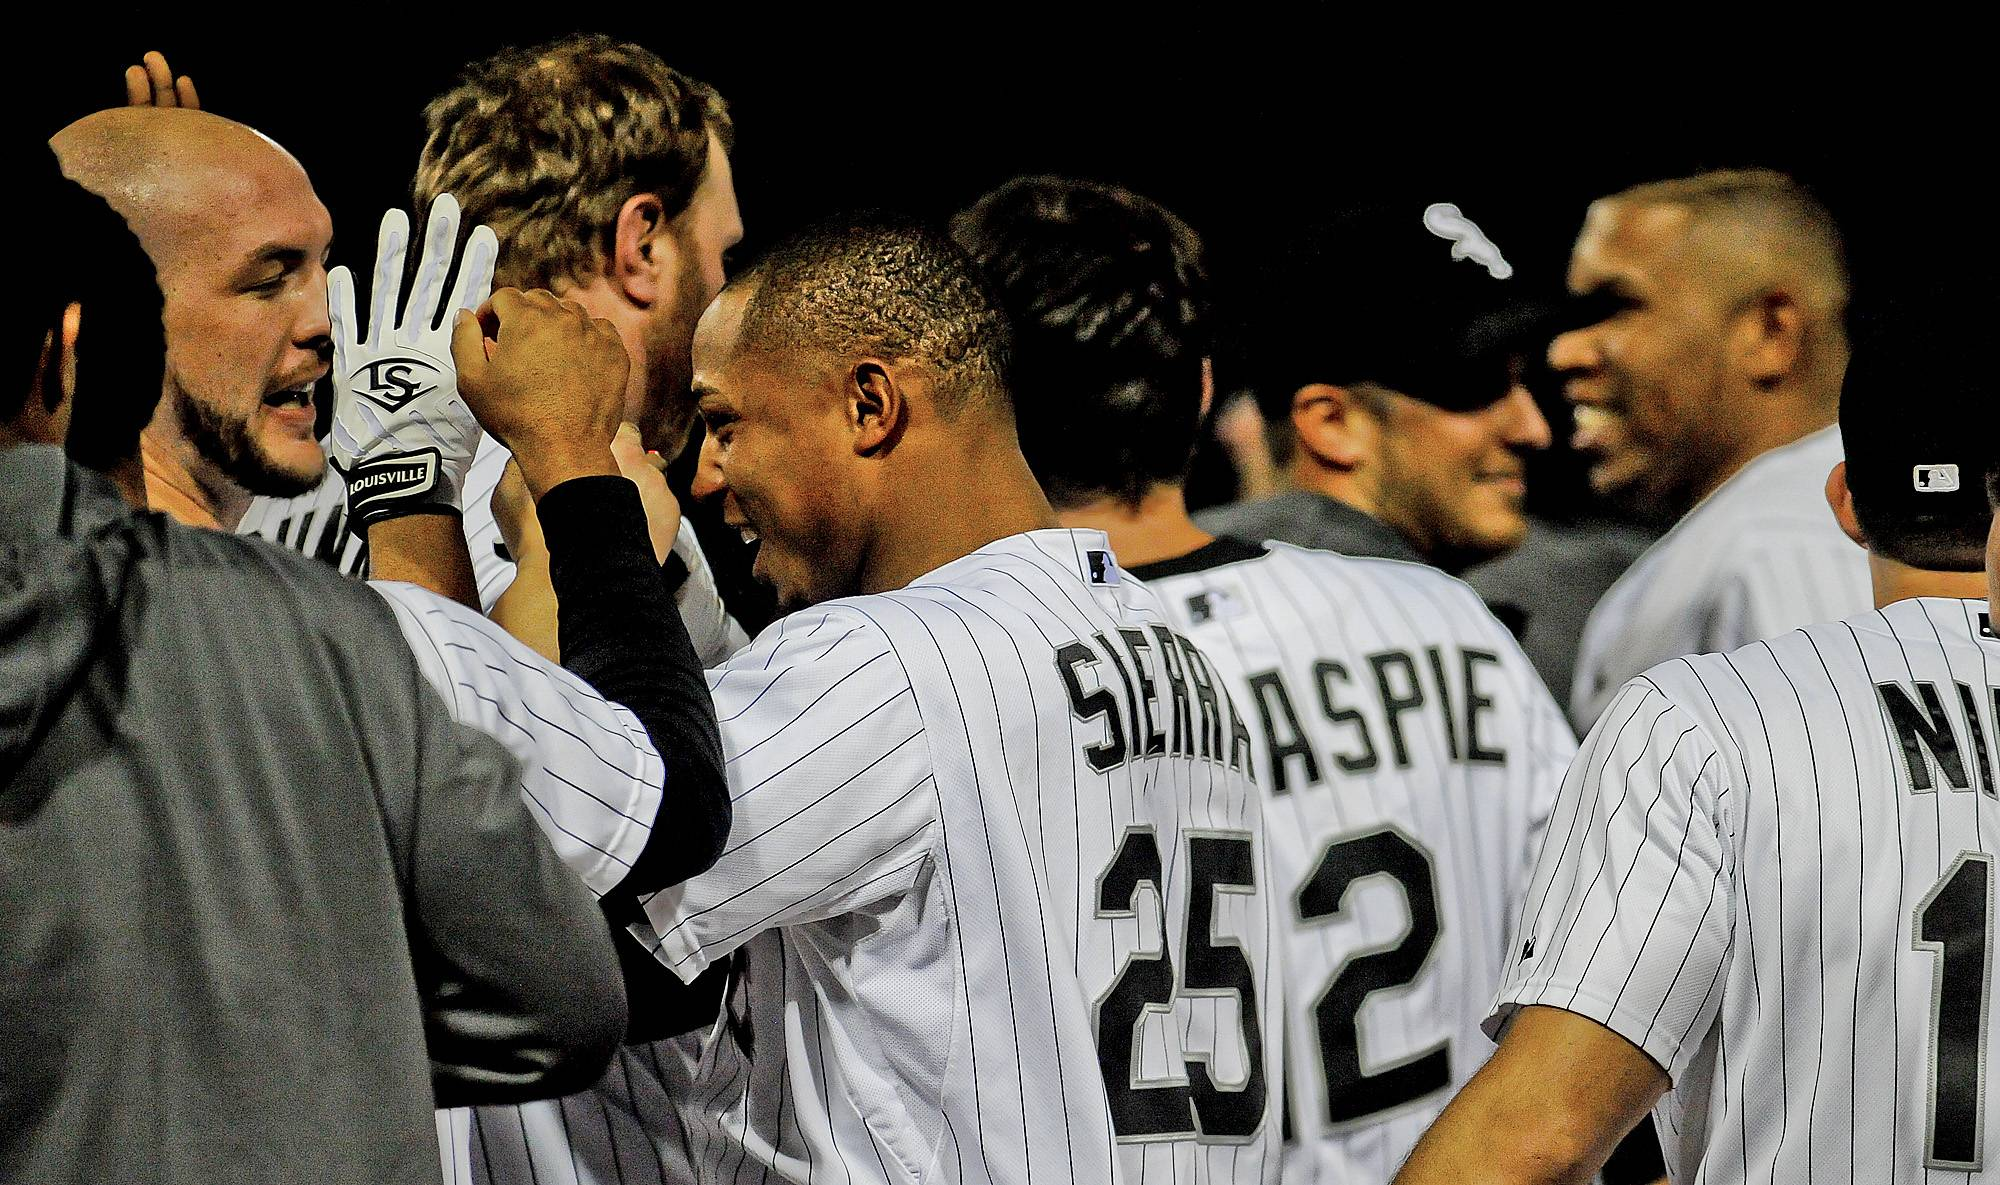 Chicago White Sox's Moises Sierra (25) is congratulated by teammates after hitting the game-winning single in the ninth inning of a baseball game against the Cleveland Indians in Chicago on Wednesday, May 28, 2014.